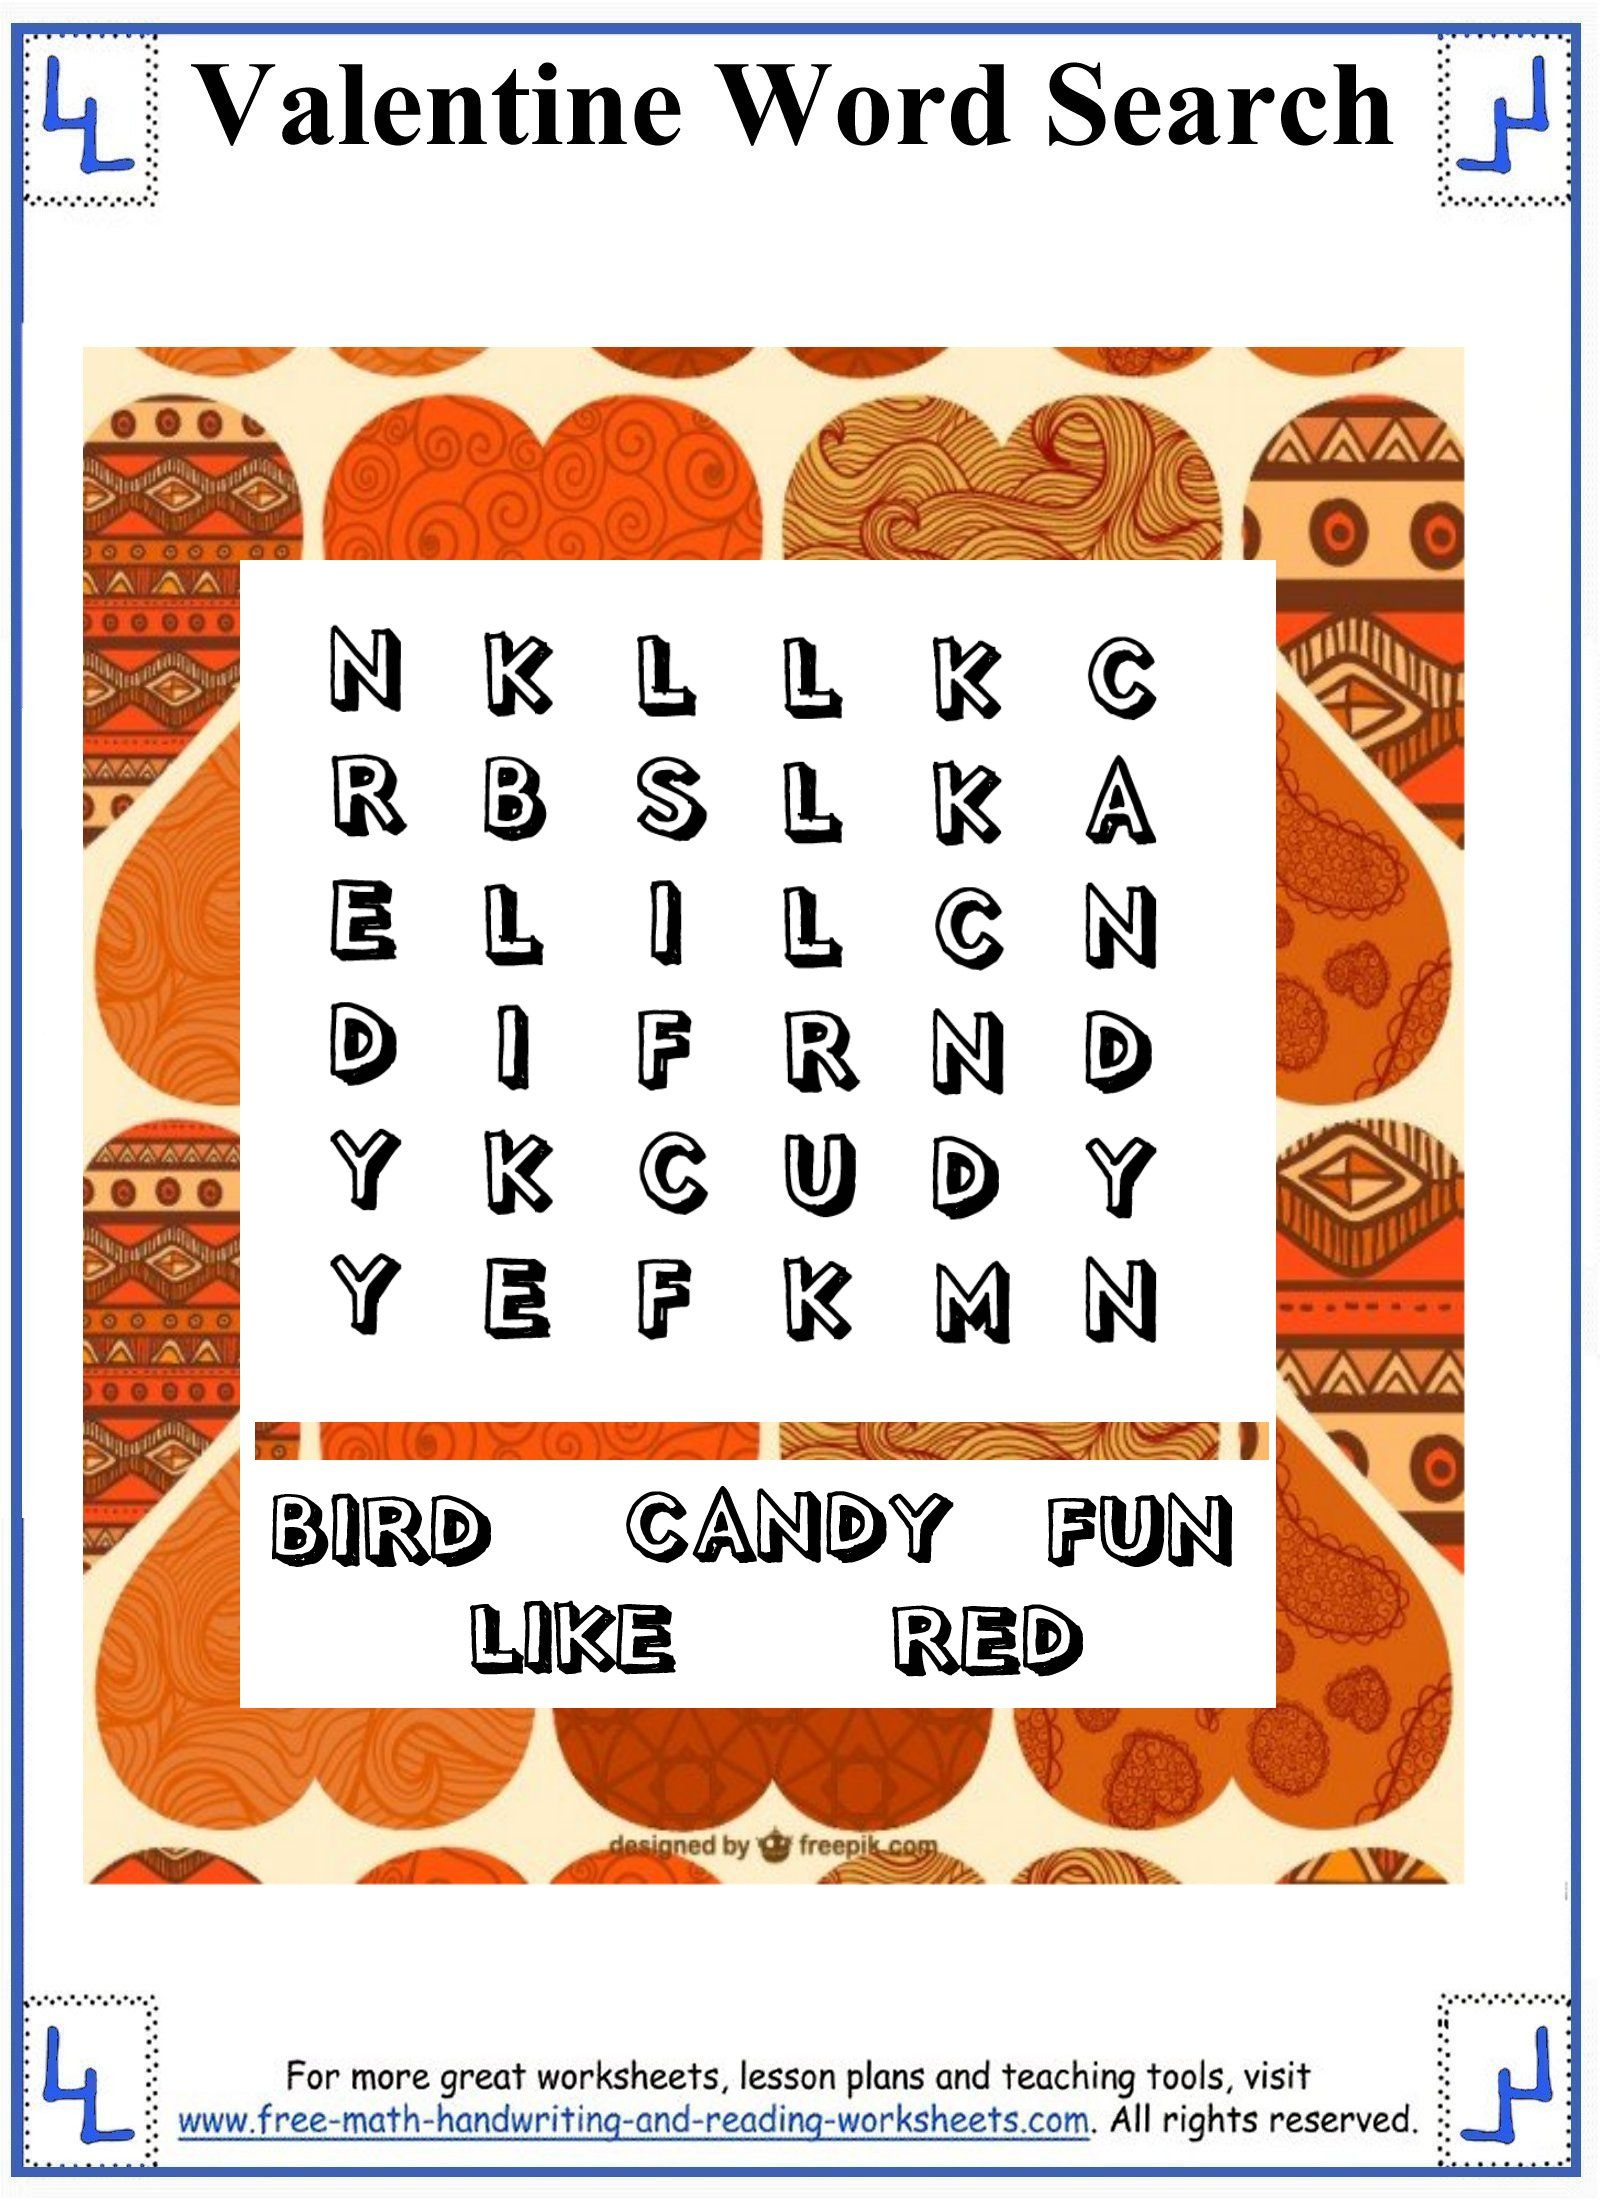 valentine word search printable puzzles small word search grid for pre k to 1st grade. Black Bedroom Furniture Sets. Home Design Ideas